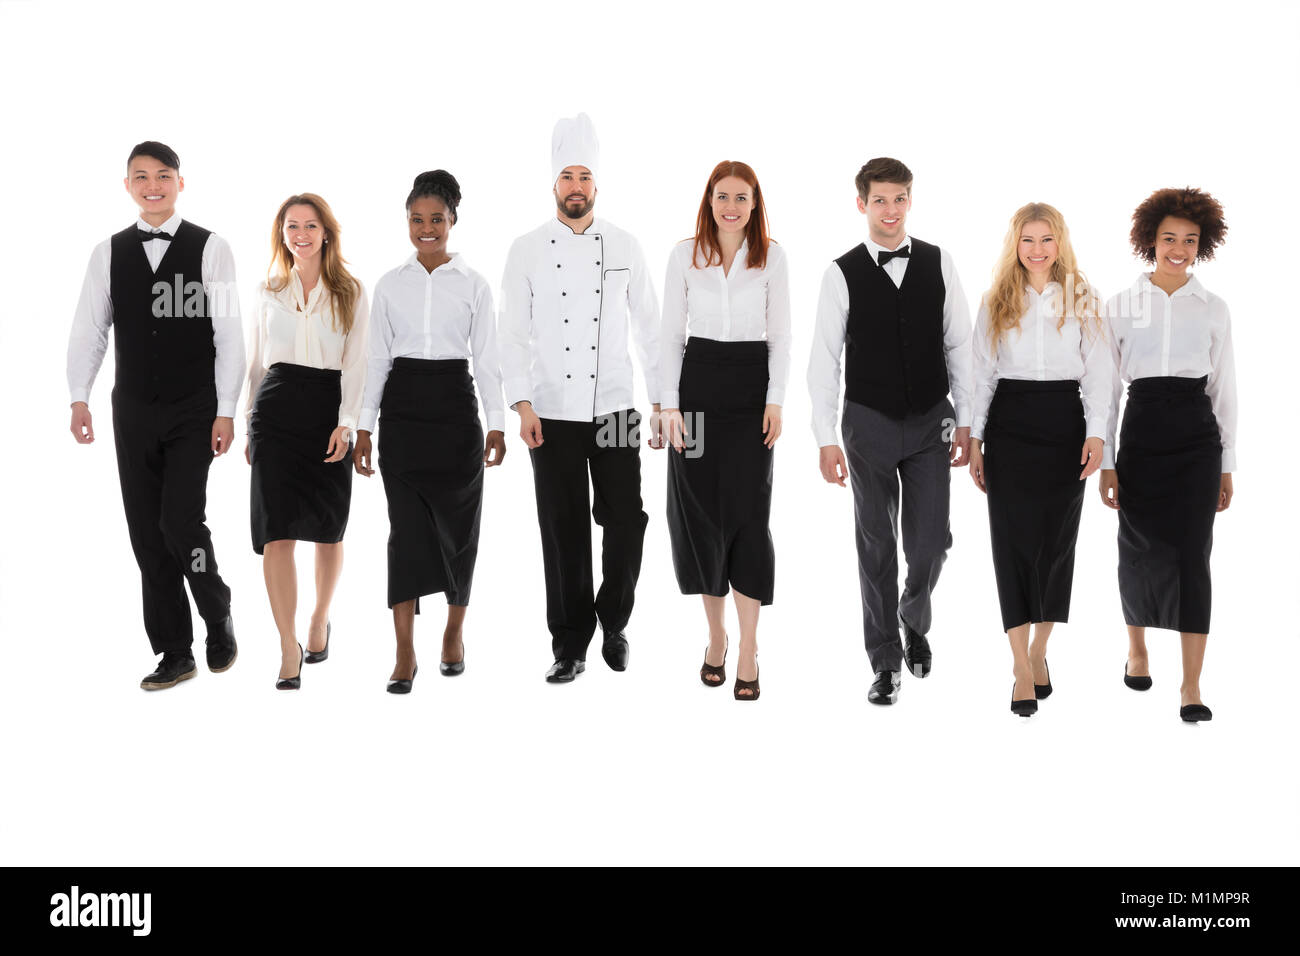 Portrait Of Happy Restaurant Staff Walking Against White Background - Stock Image